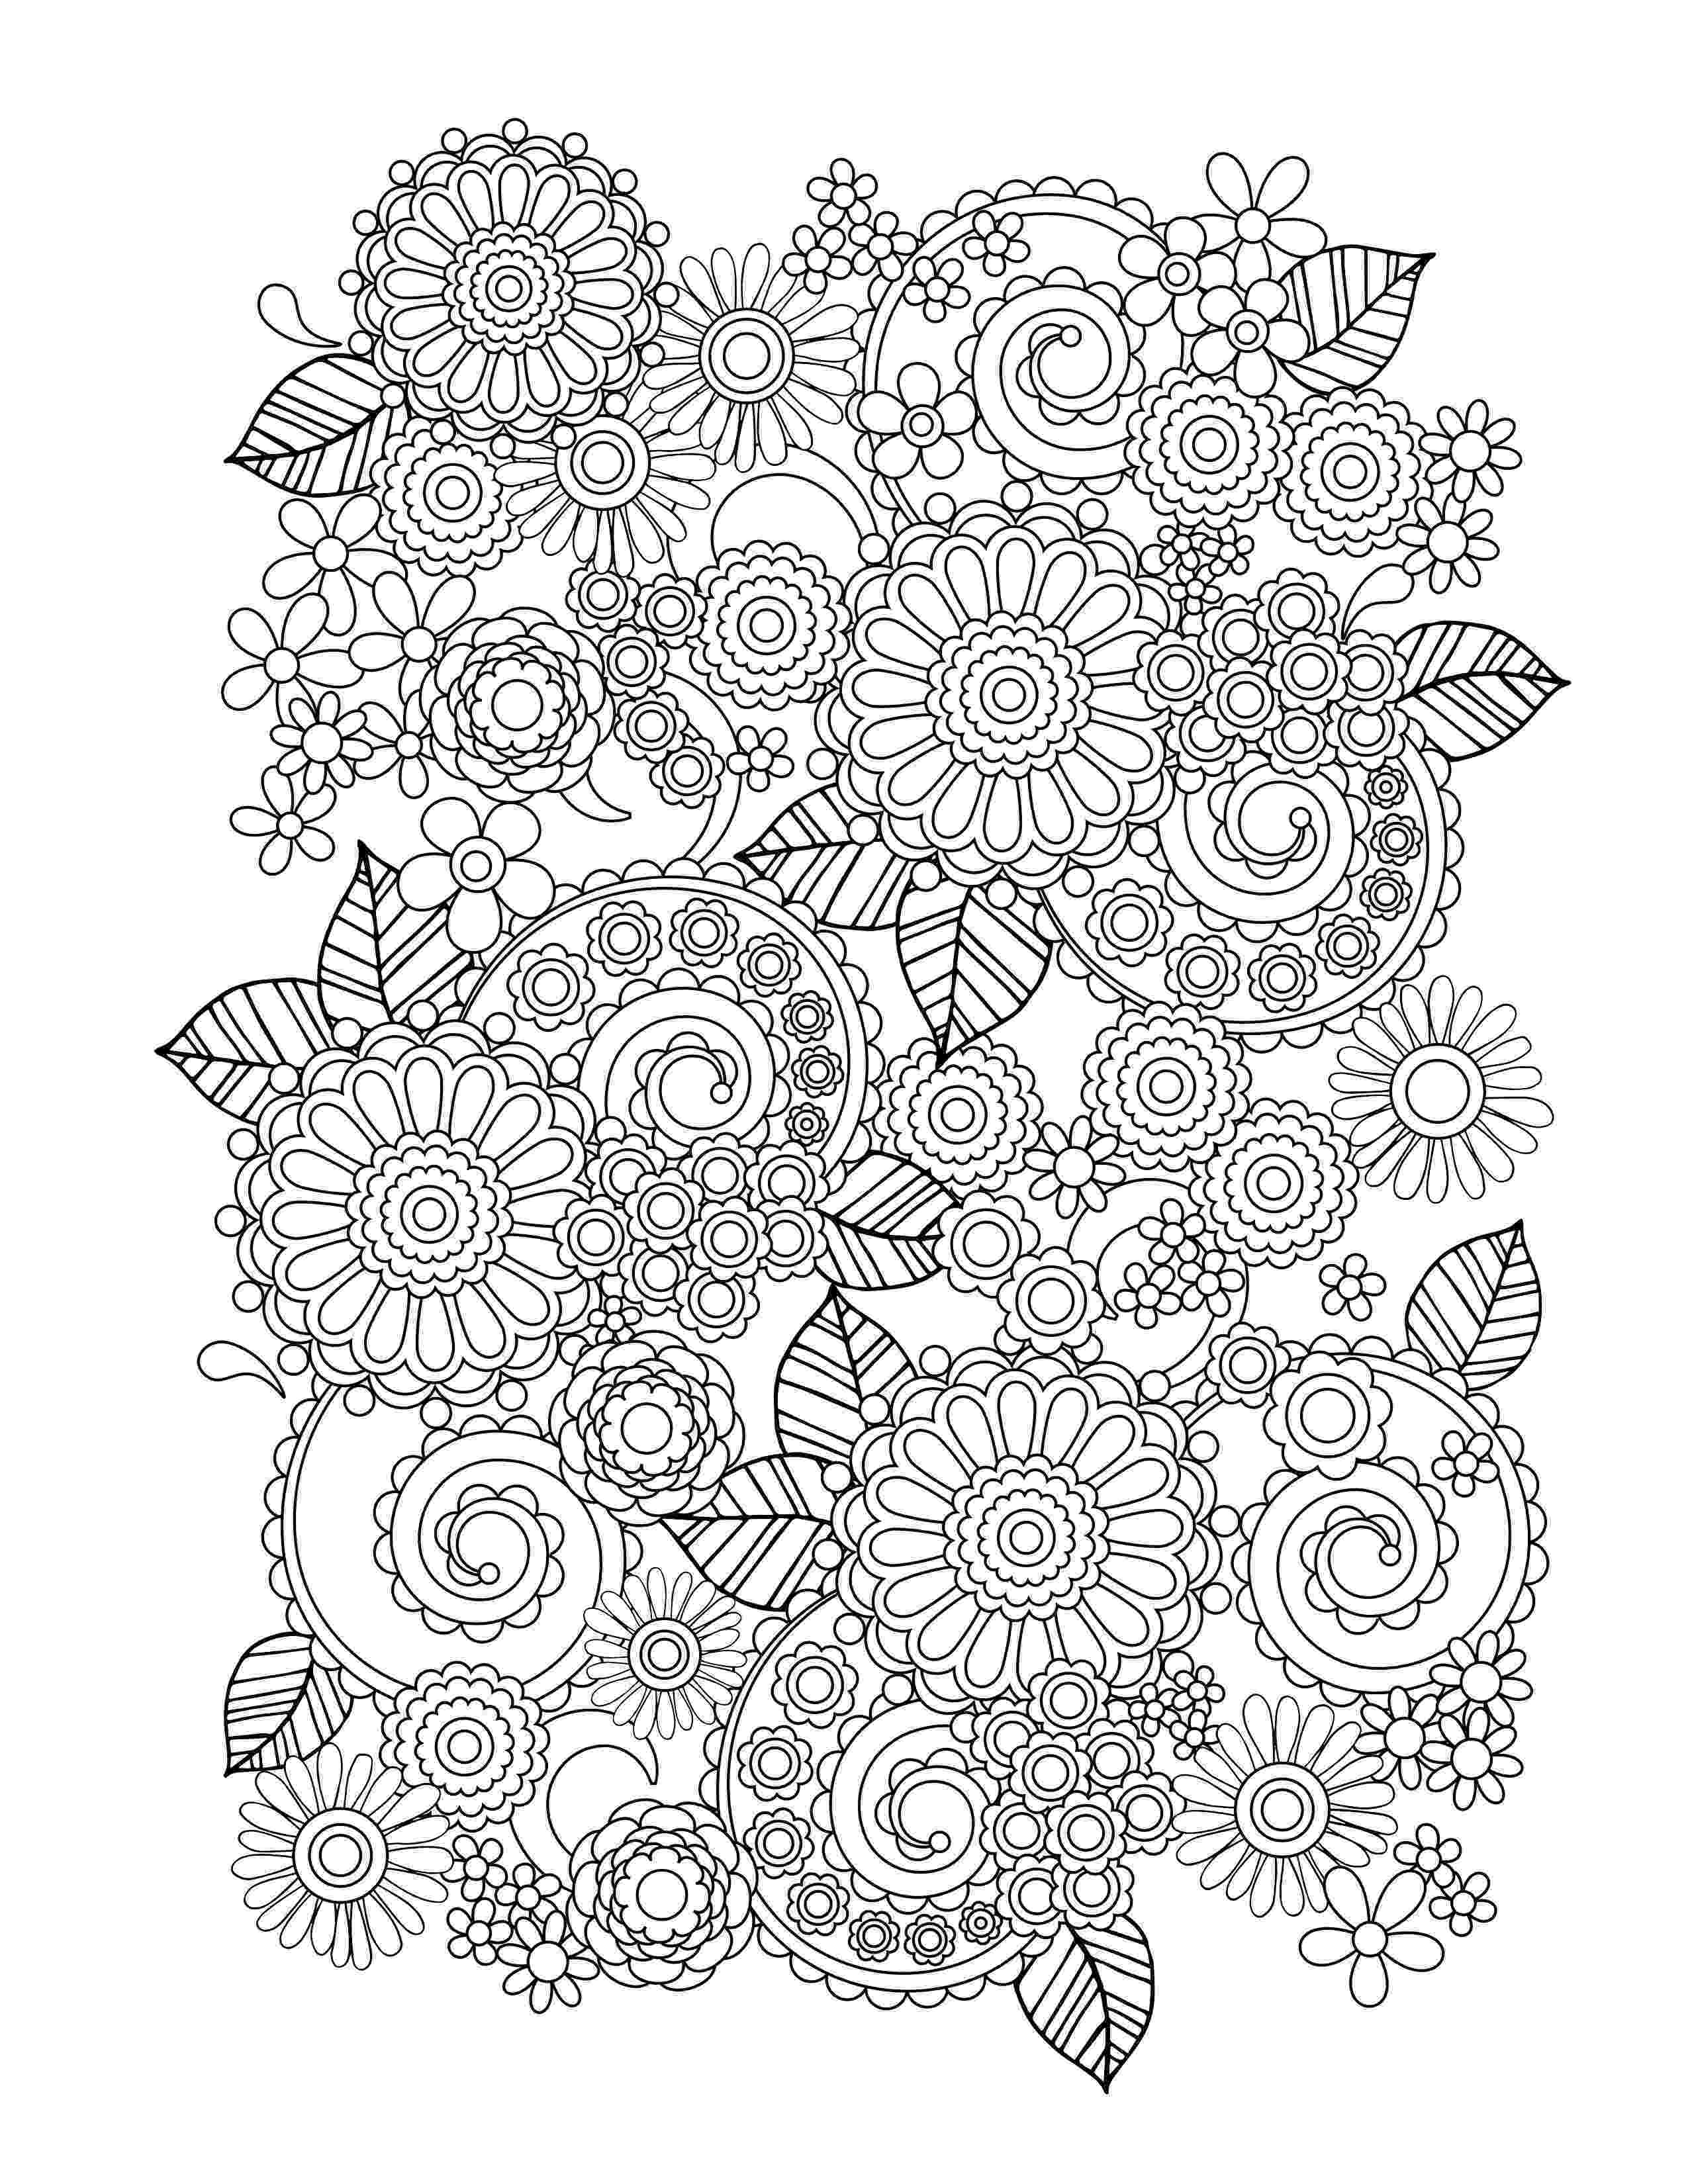 coloring pages for adults to print flowers flower coloring pages for adults best coloring pages for coloring for print flowers adults pages to